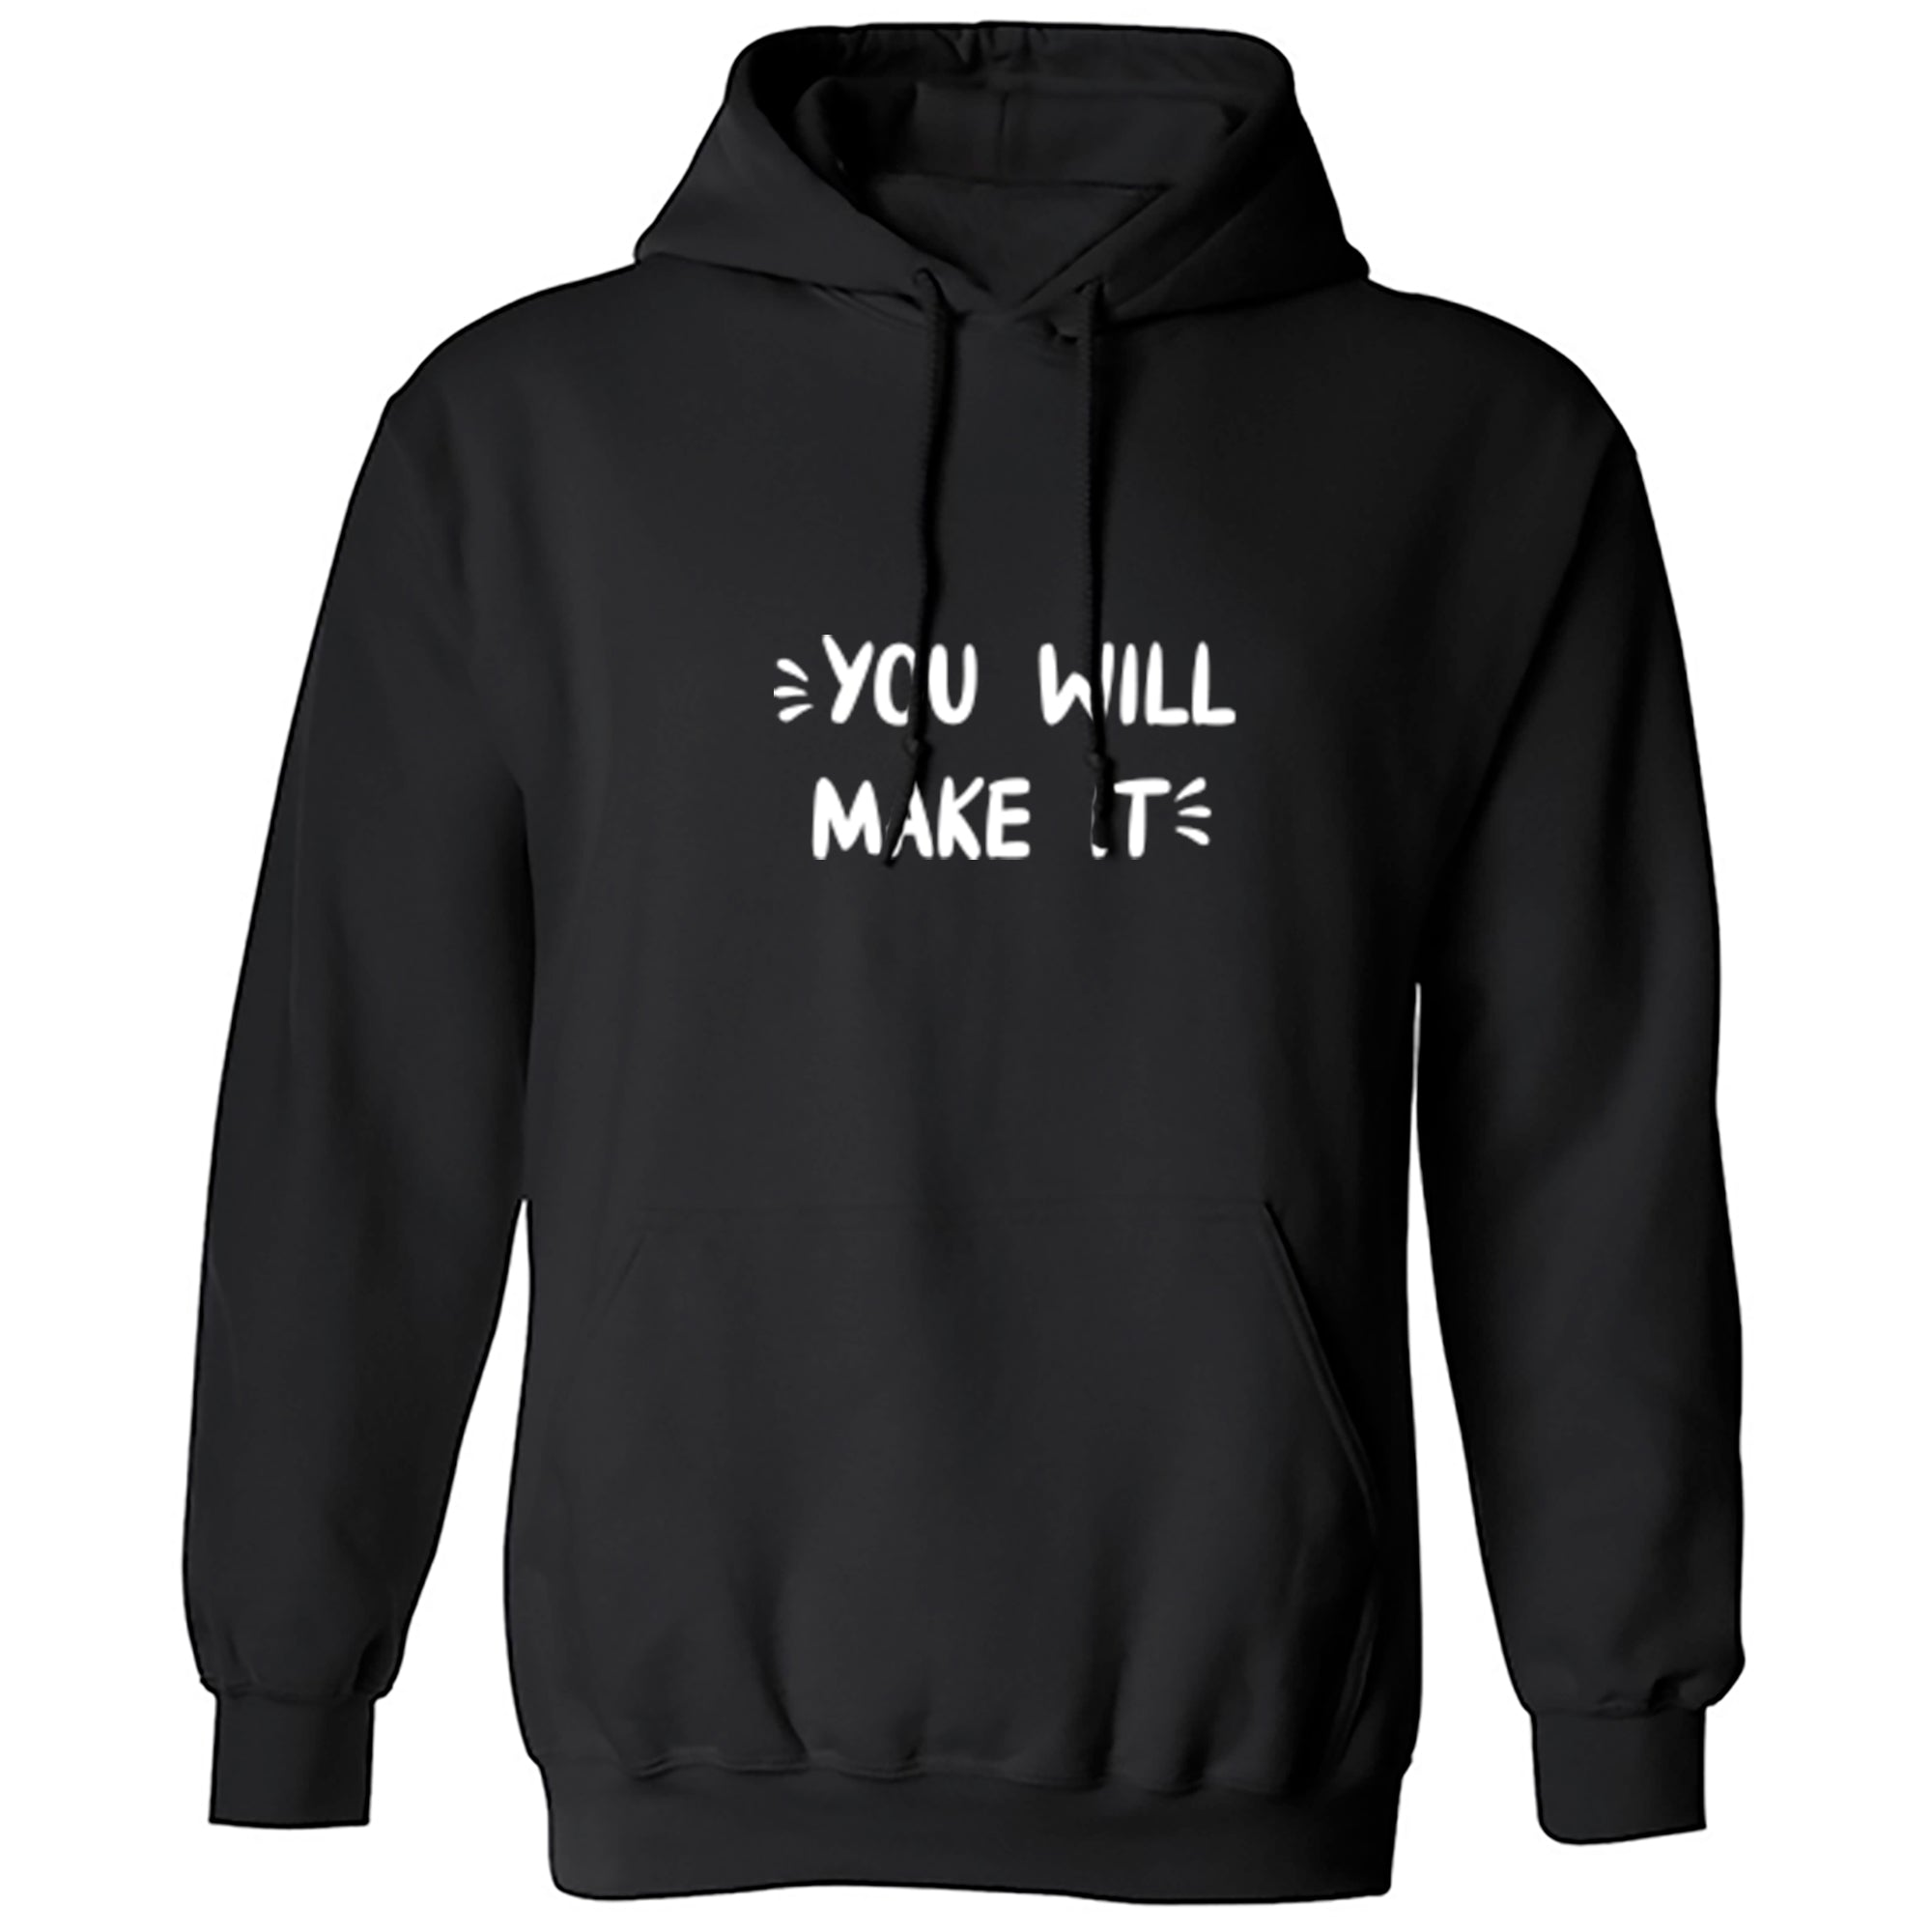 You Will Make It Unisex Hoodie S1257 - Illustrated Identity Ltd.